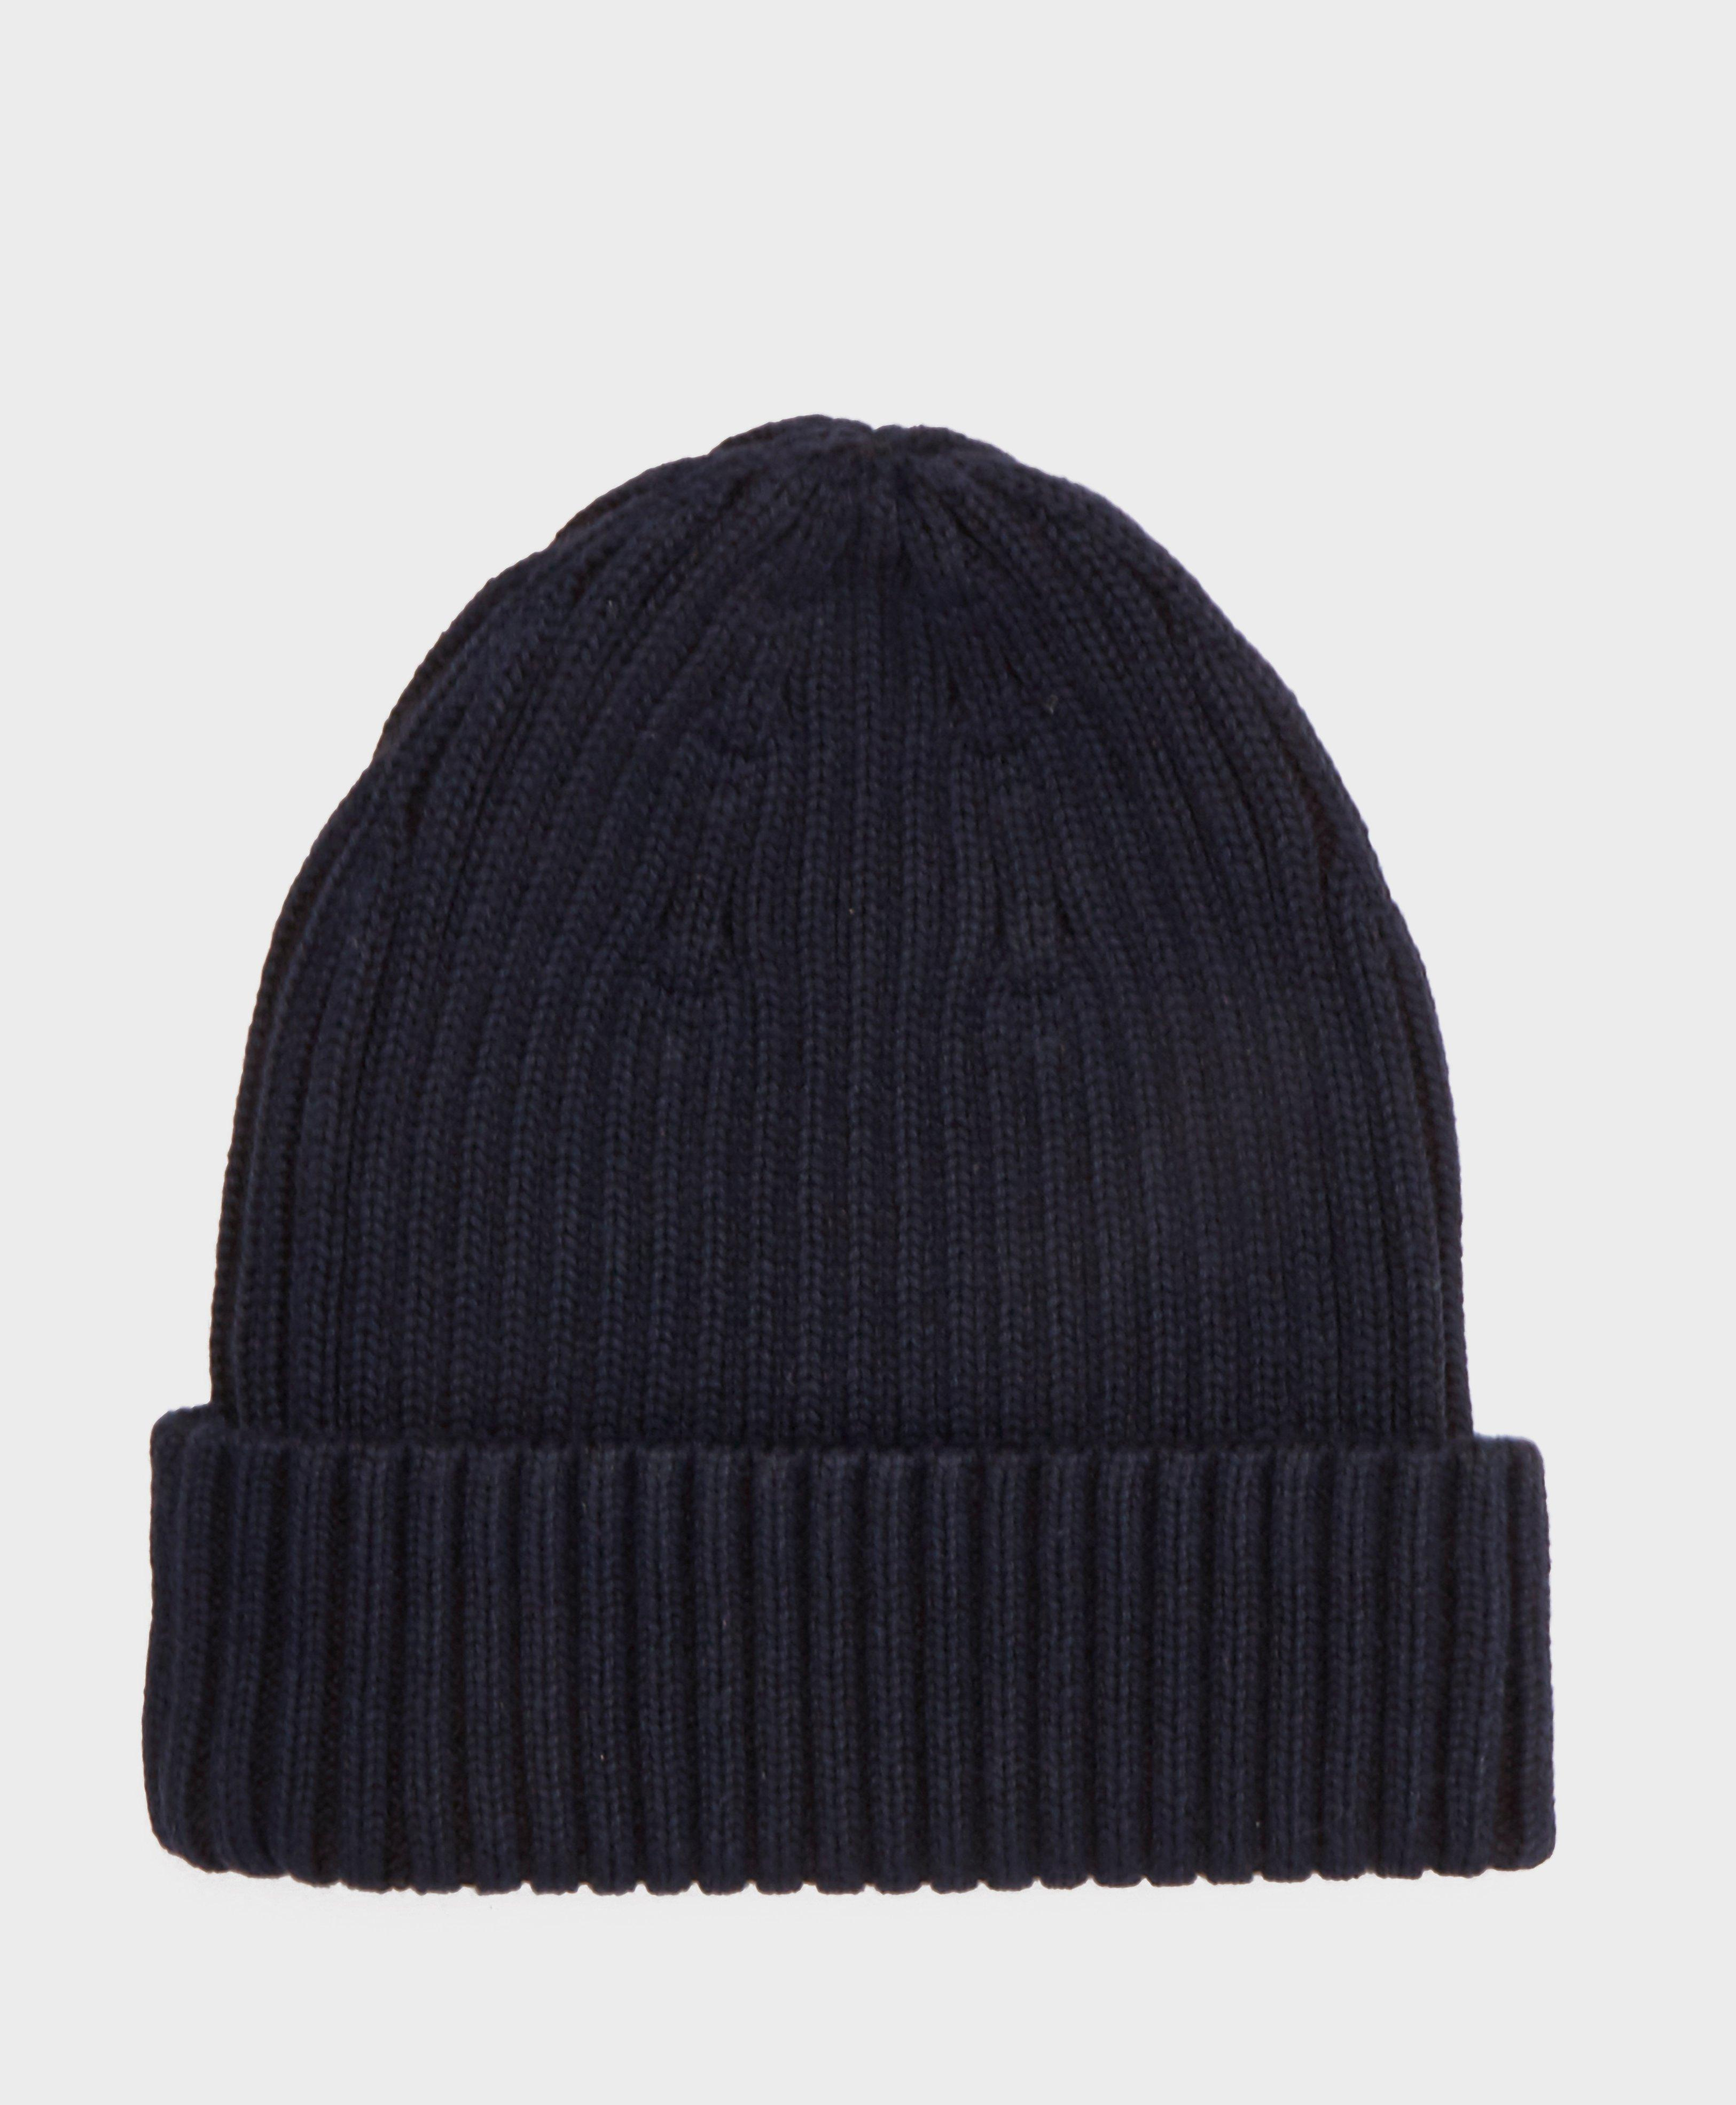 cc5180227 Fred Perry Two Tone Knitted Beanie in Blue for Men - Lyst